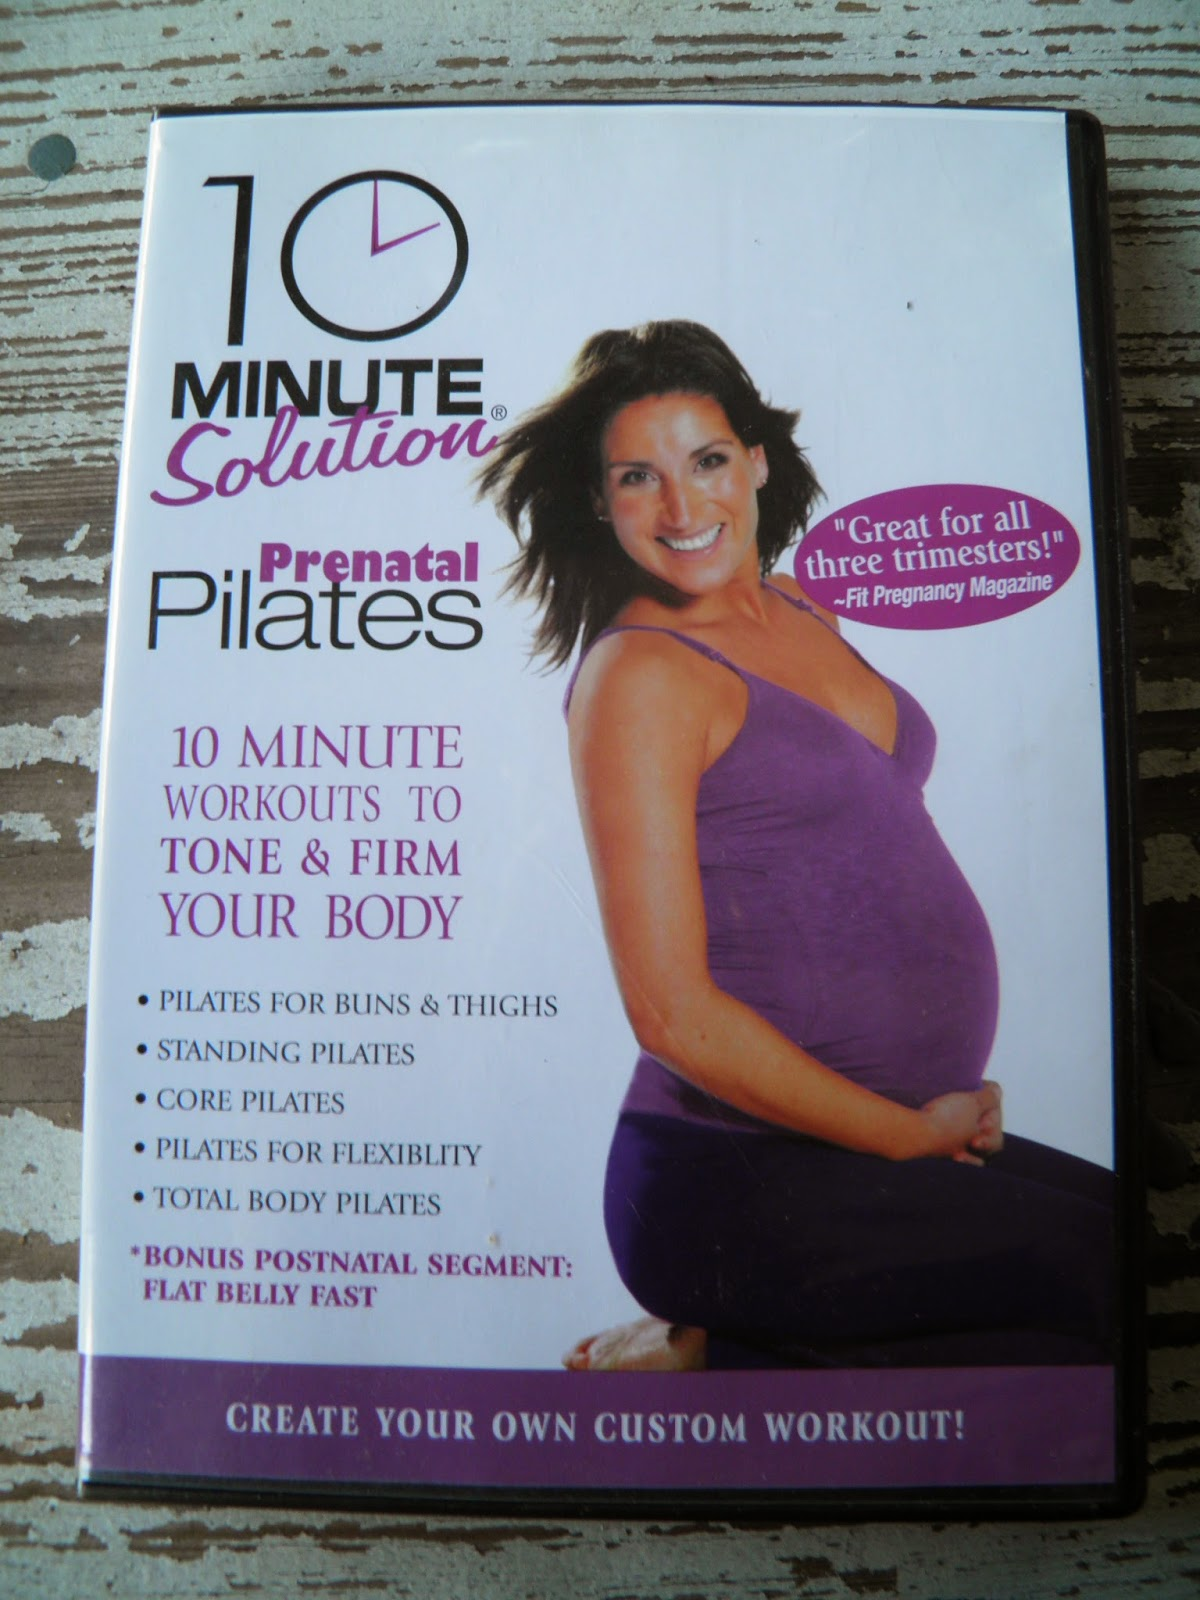 prenatal pilates workout video